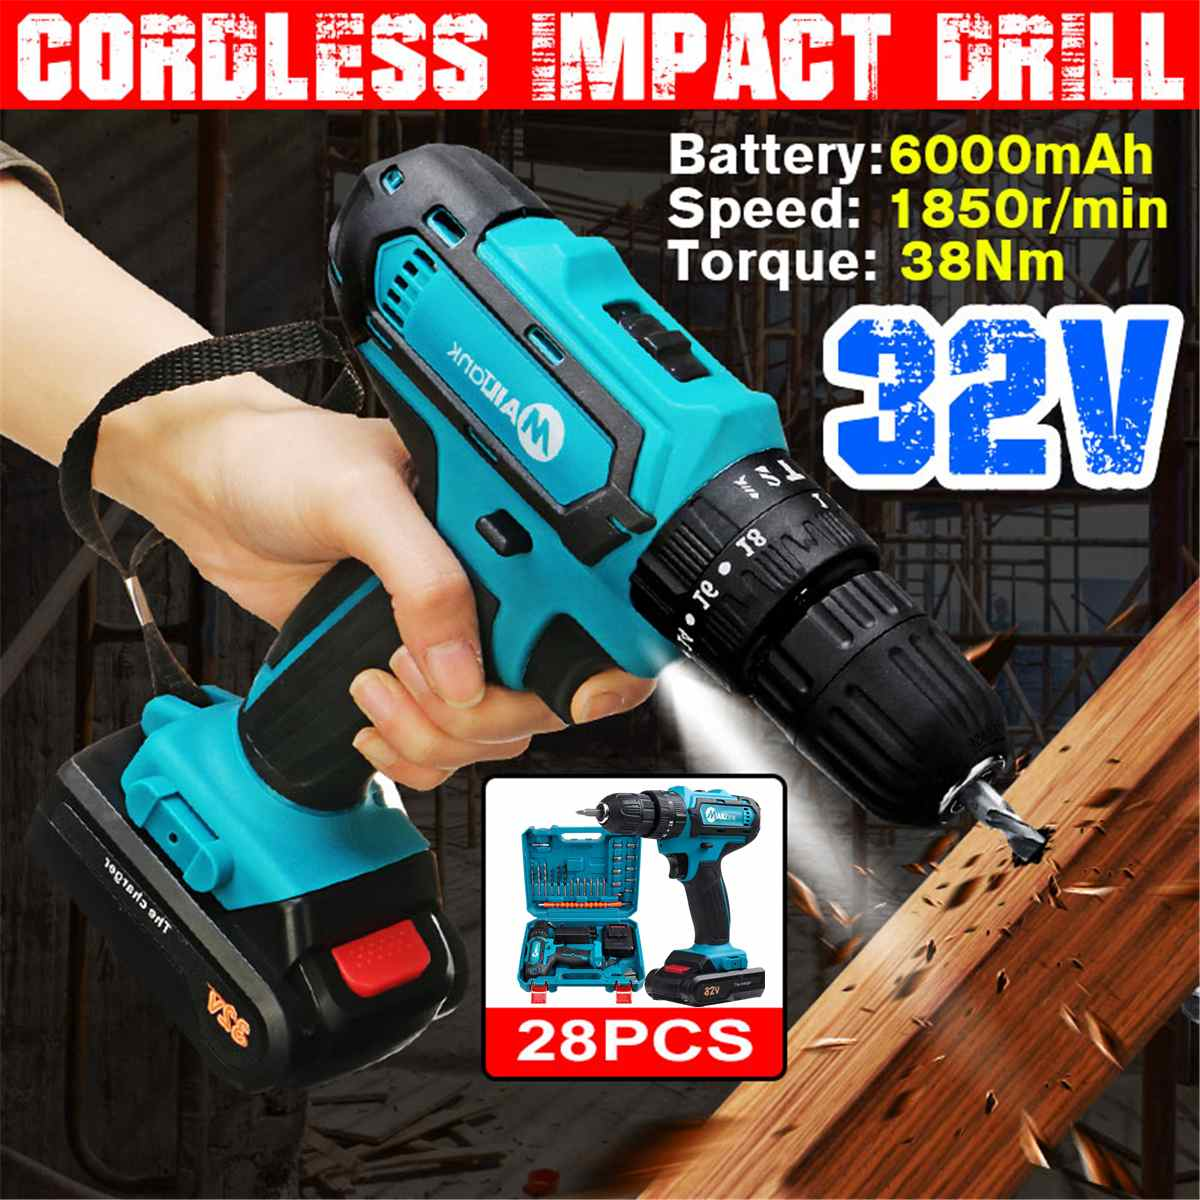 3 In 1 Cordless Electric Drill Hammer Screwdriver 32V 2 Speed LED Lighting Impact Drill 38Nm 18 3 Torque Power Tool with Battery